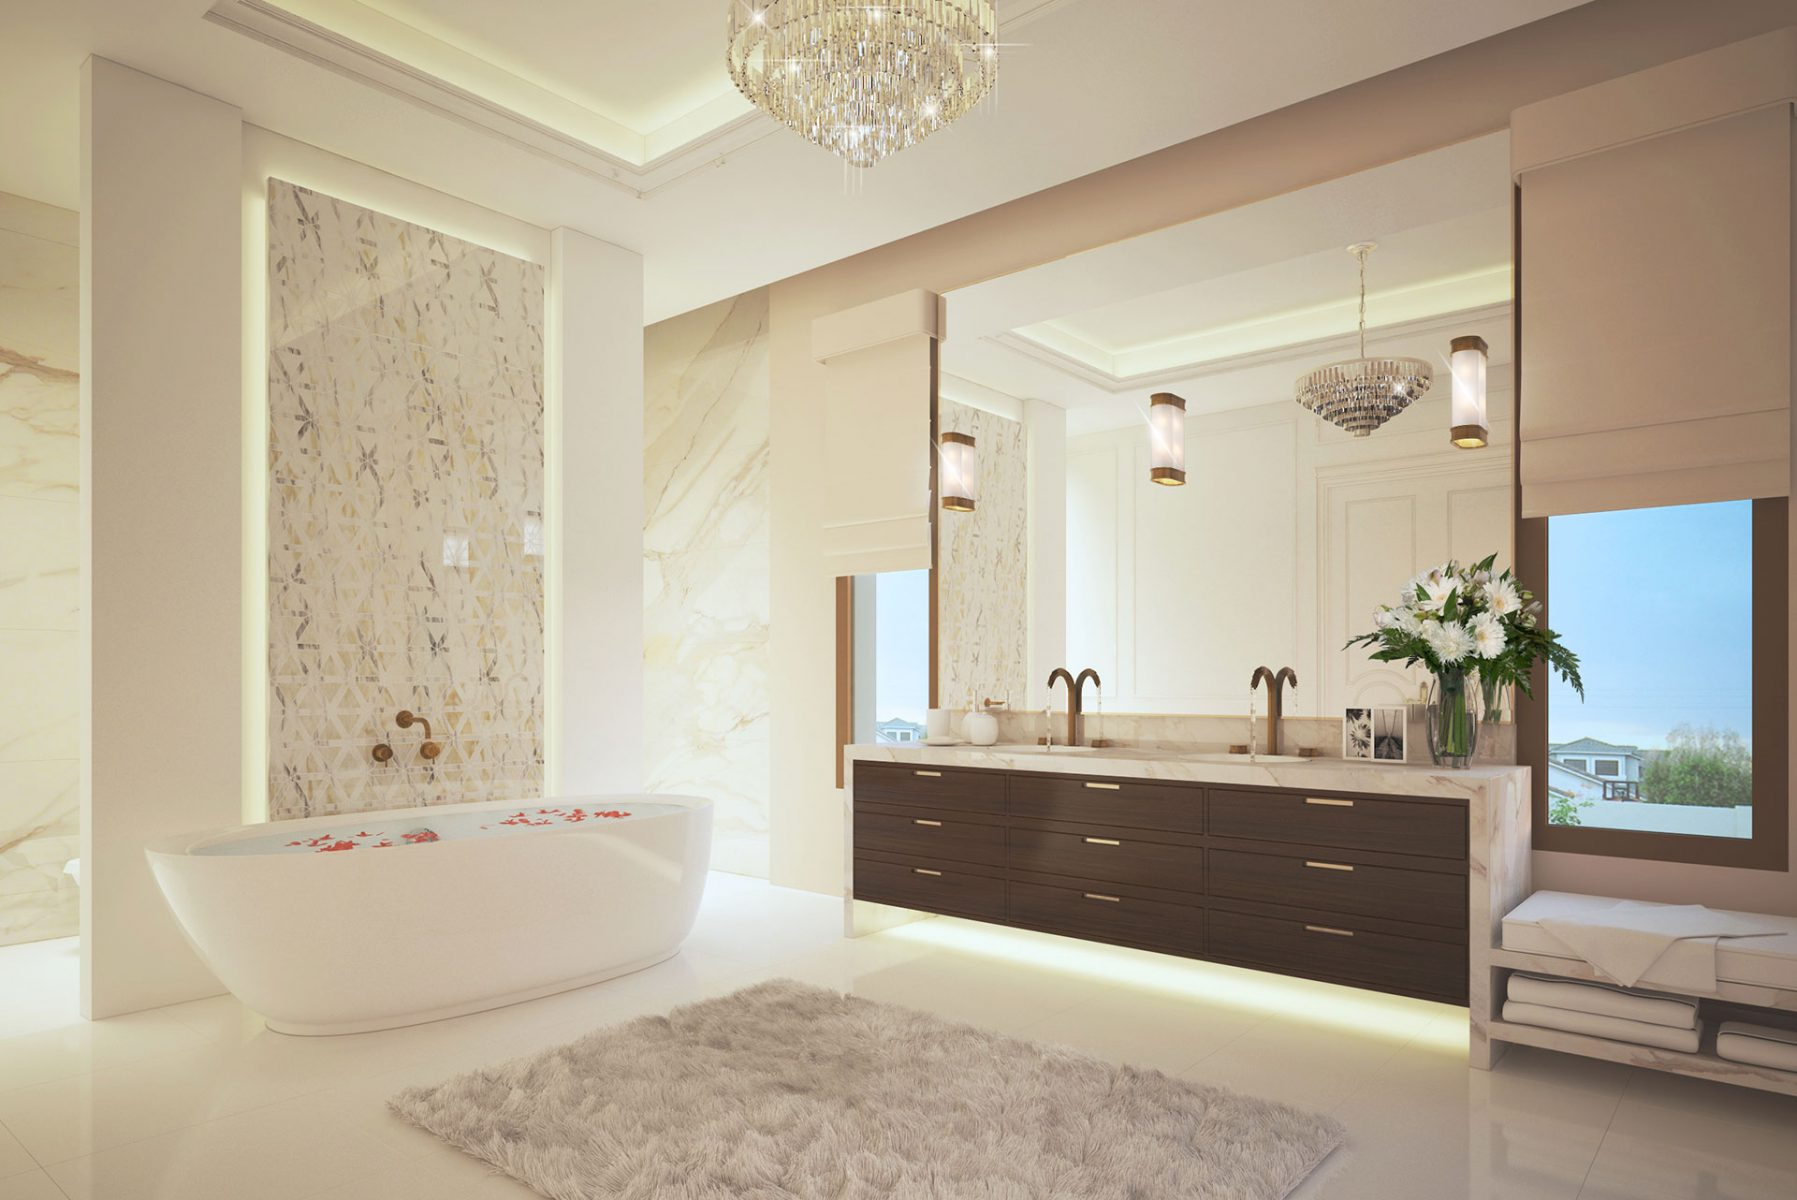 Get to know the amazing Private Villa Interiors in Dubai Hills 5 private villa interiors Get To Know The Amazing Private Villa Interiors in Dubai Hills! Get to know the amazing Private Villa Interiors in Dubai Hills 5